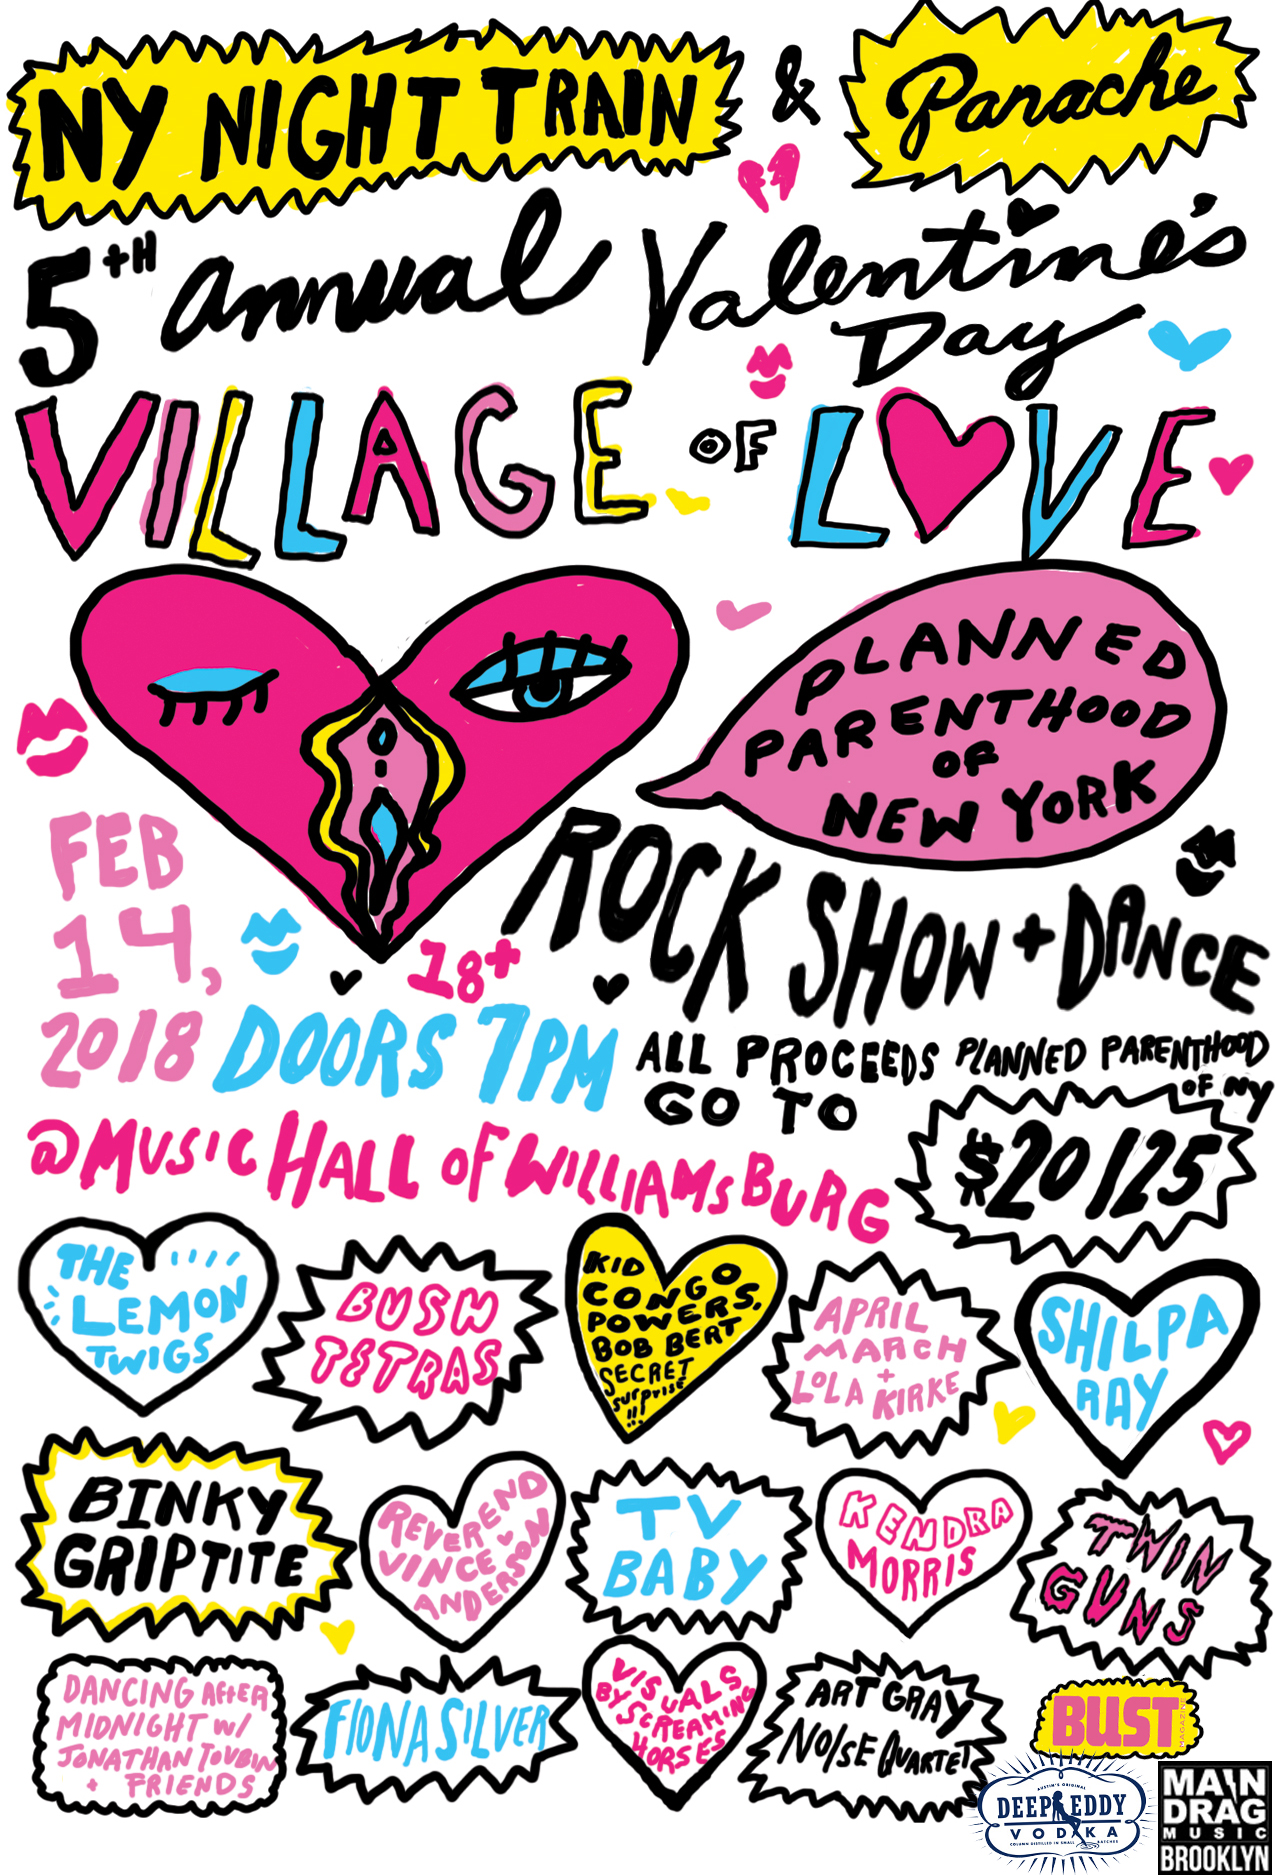 New York Night Train Blog Archive 5th Annual Village Of Love